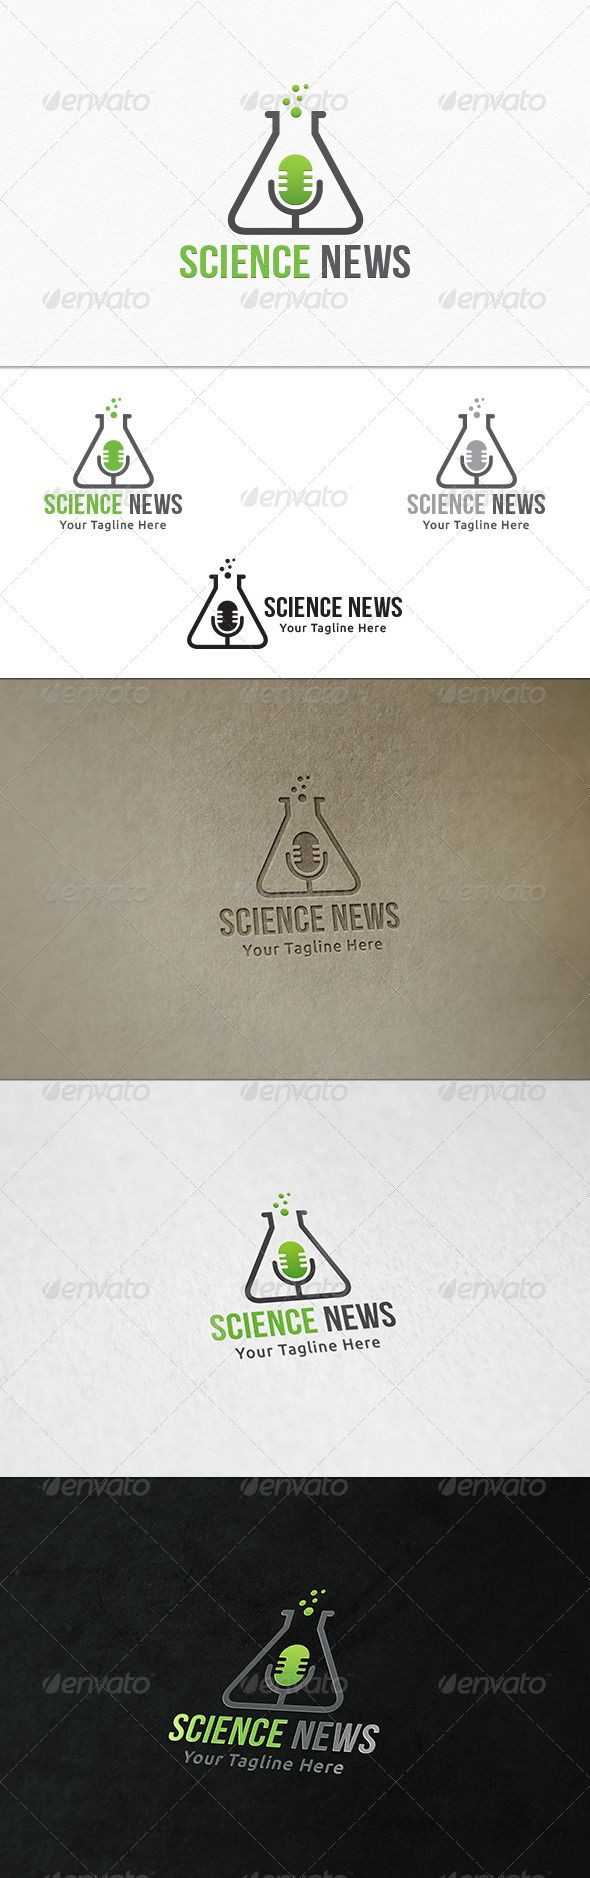 Science News - Logo Template | Pinterest | Logo templates, Logos and ...